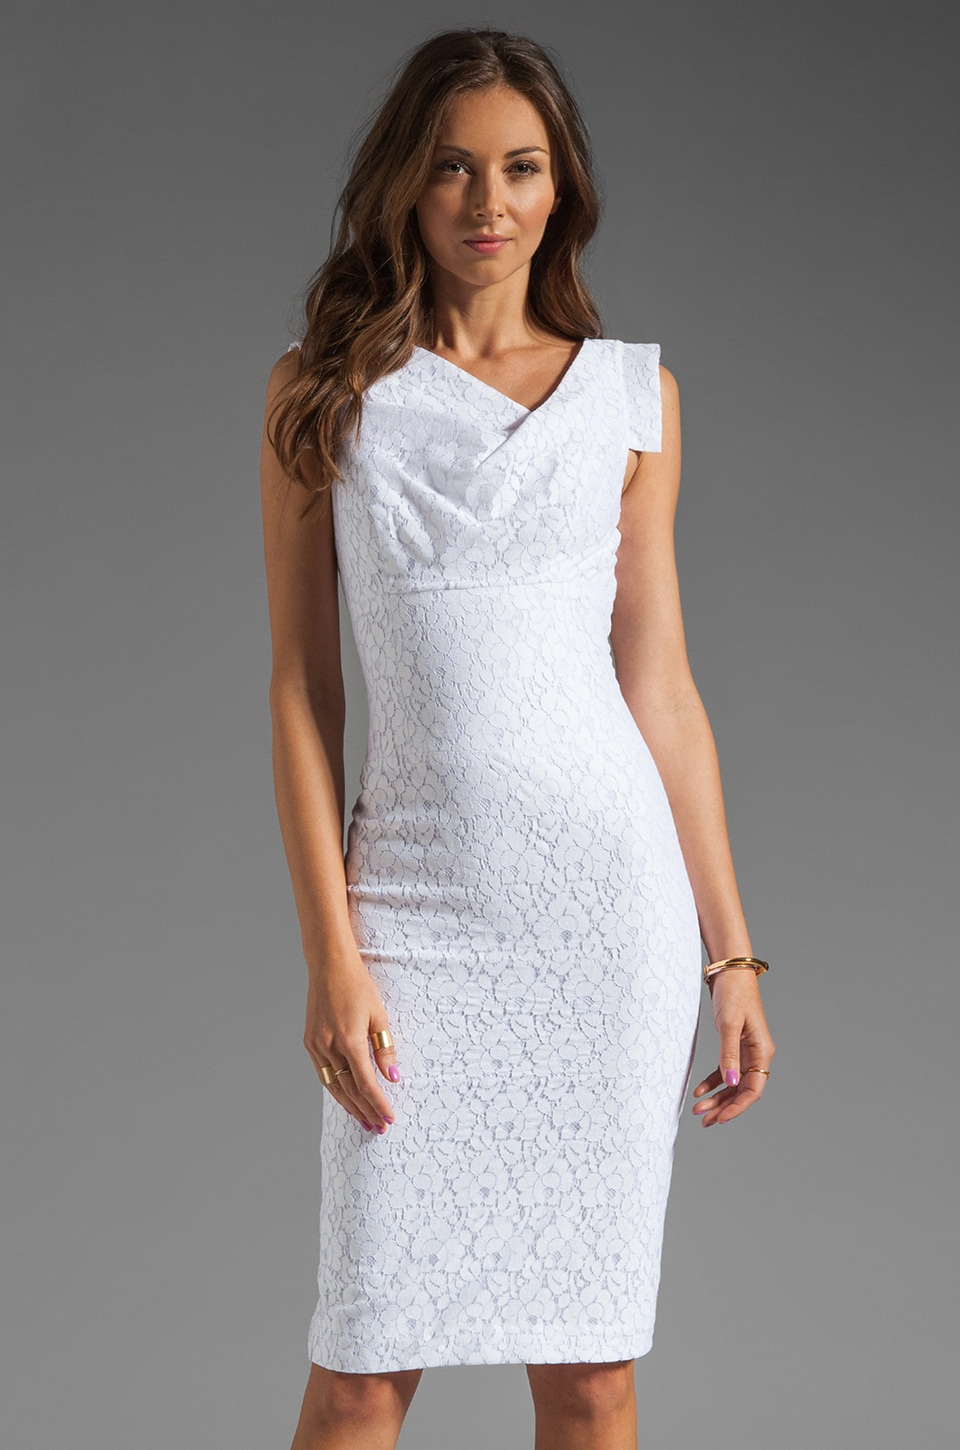 Black Halo Jackie-O Raschel Lace Dress in White Lace